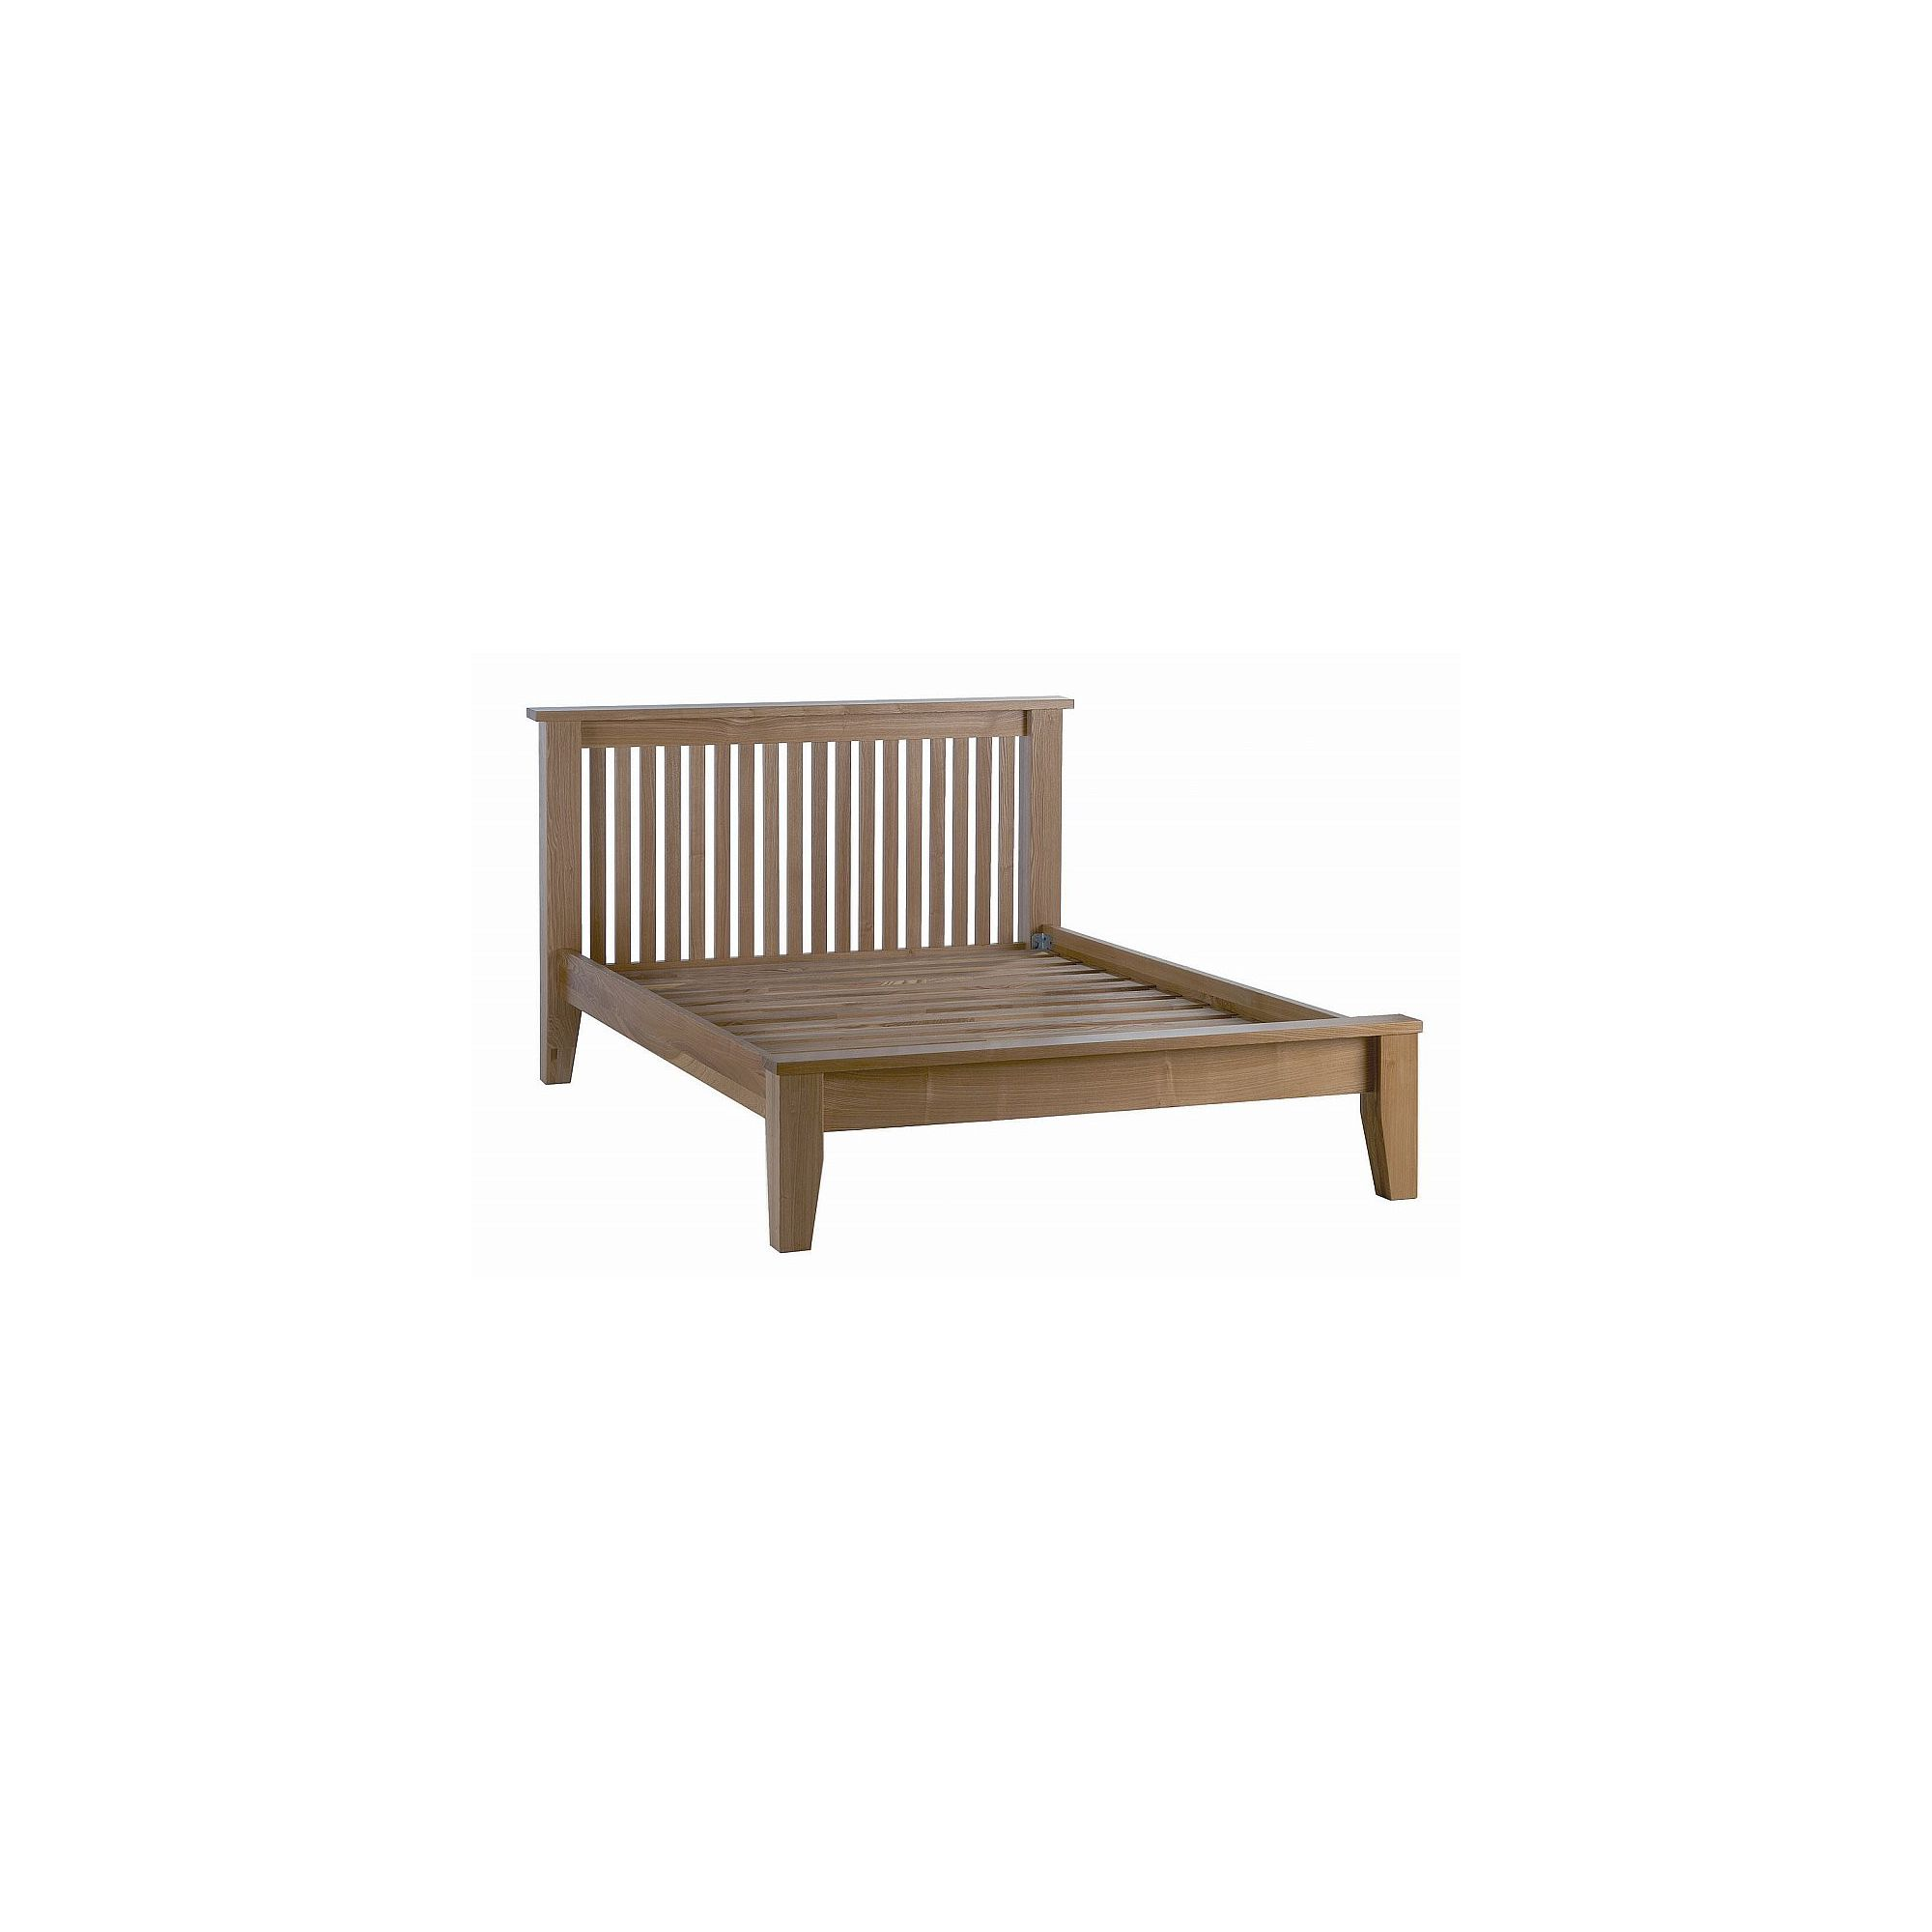 Kelburn Furniture Carlton Low Foot End Bed Frame - Double at Tesco Direct